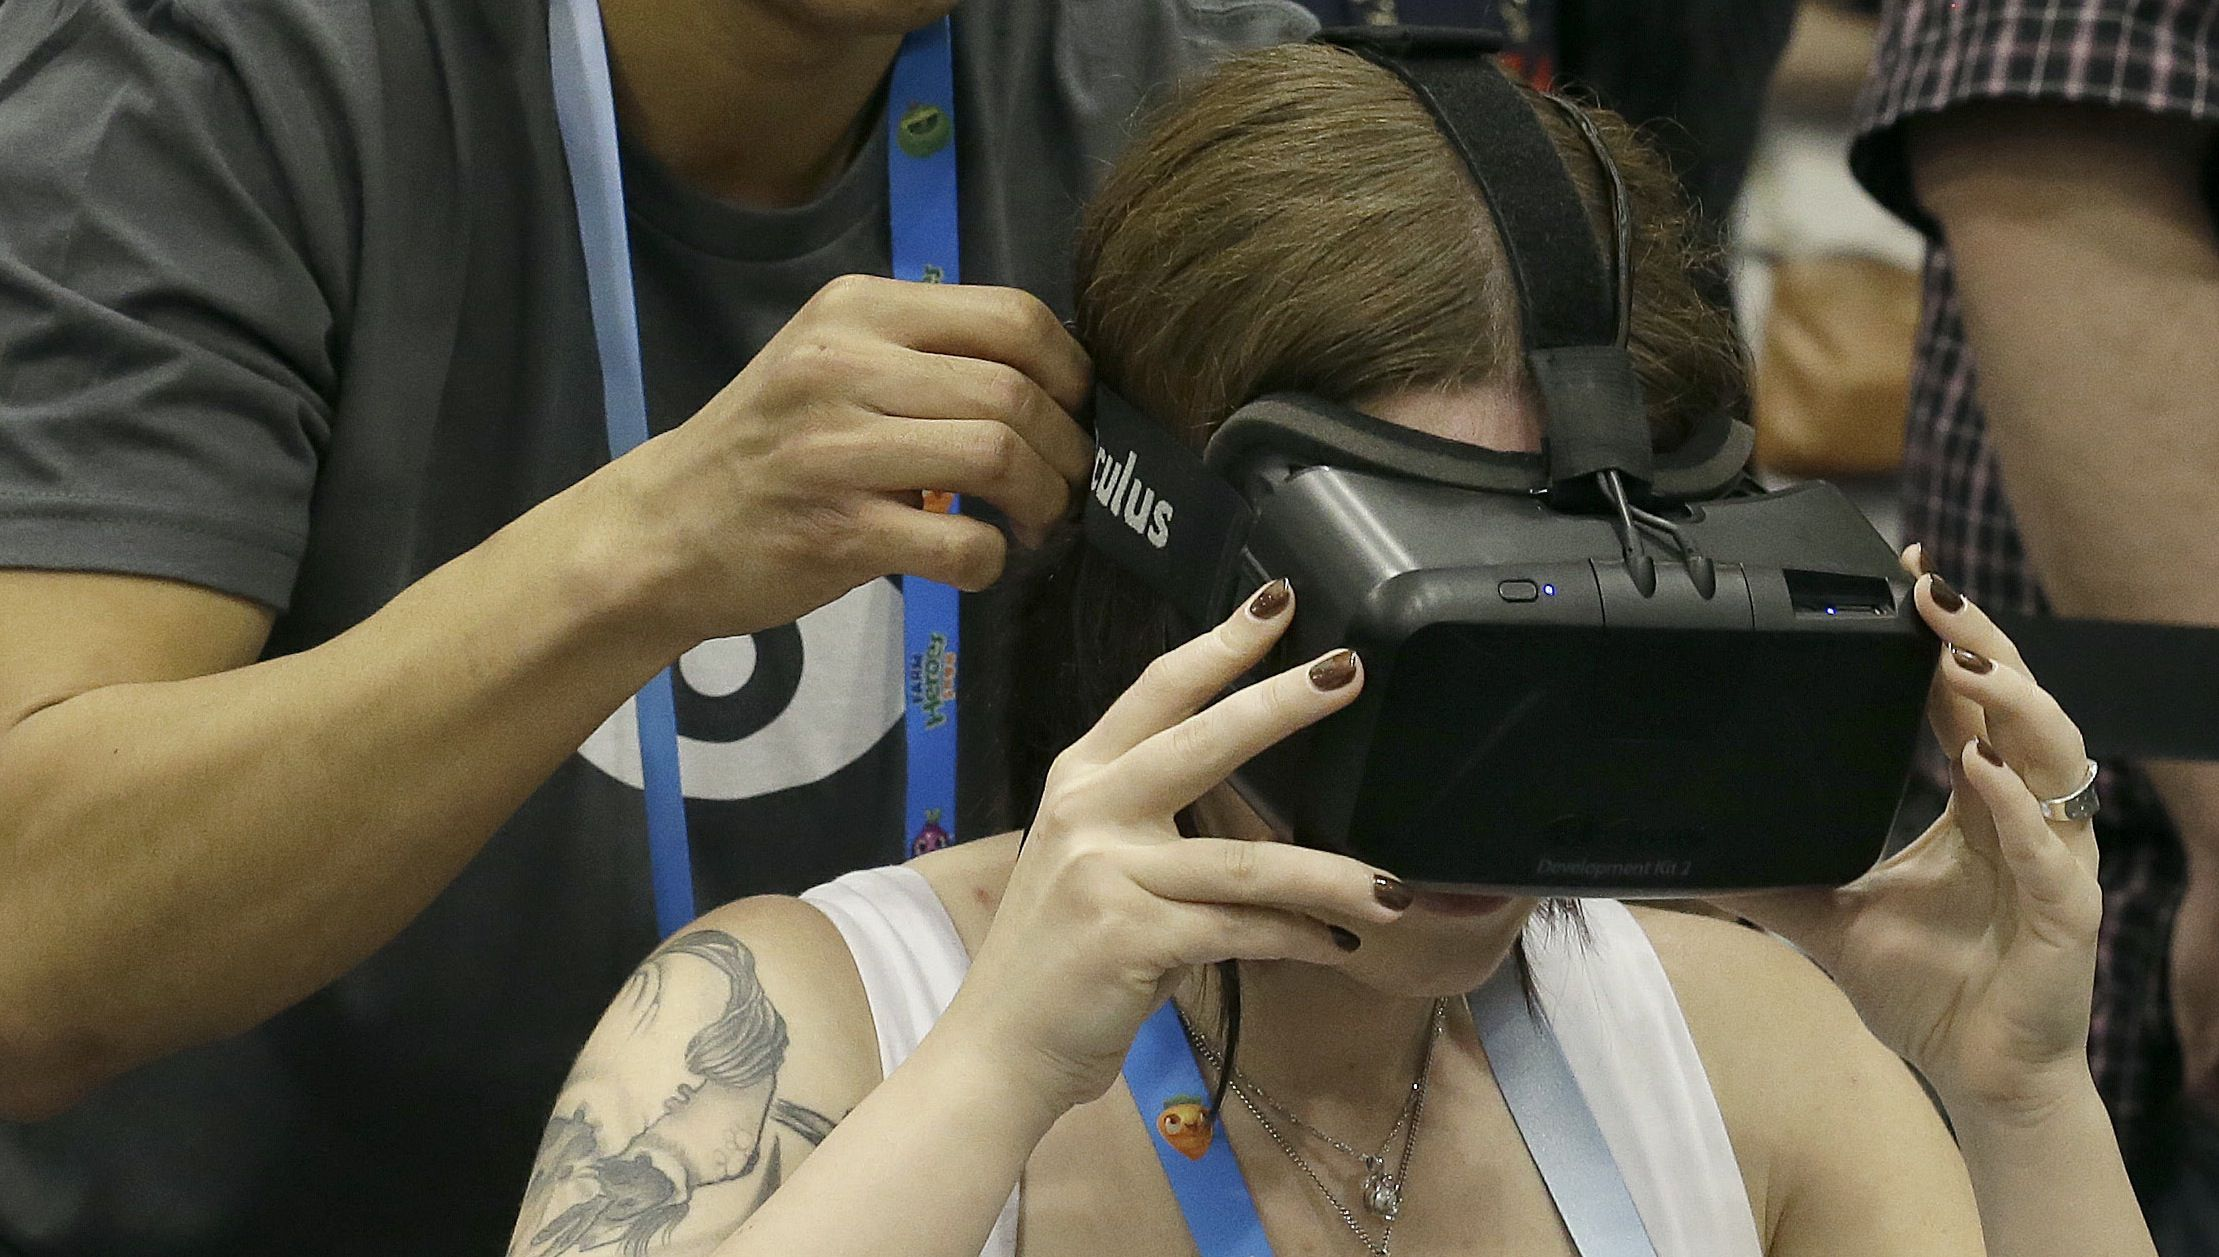 David Ninh helps put an Oculus virtual reality headset onto Lana Ansay at the Game Developers Conference 2014 in San Francisco, Wednesday, March 19, 2014. (AP Photo/Jeff Chiu)